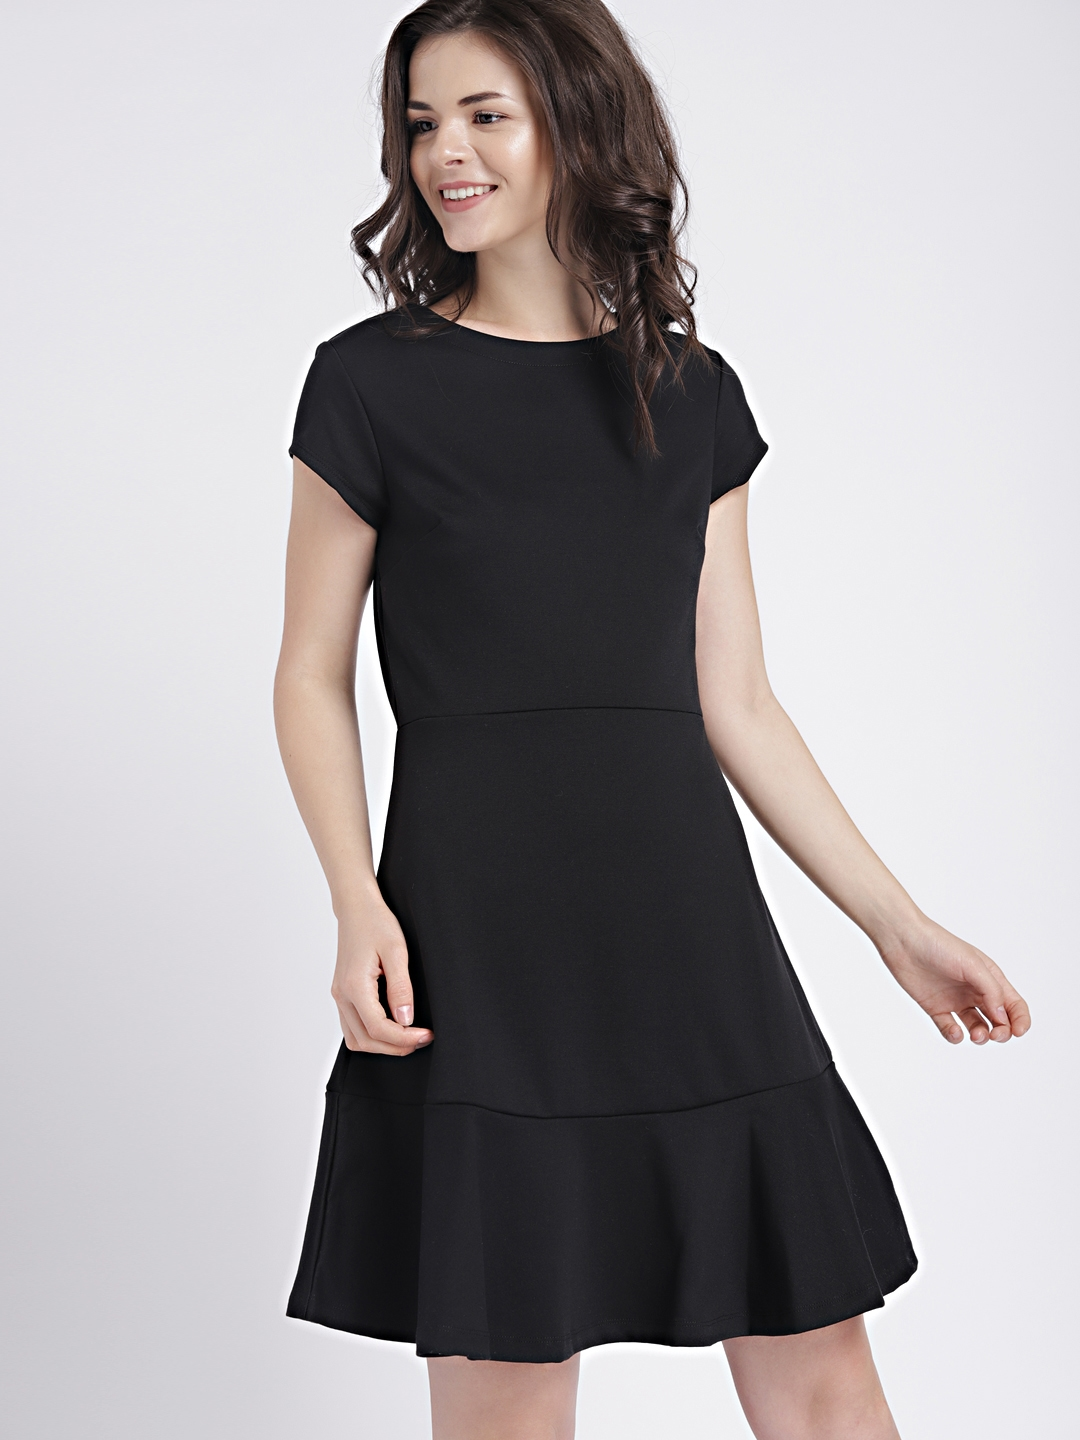 2facccb9d74 Buy GAP Women's Black Short Sleeve Fit And Flare Peplum Dress In ...